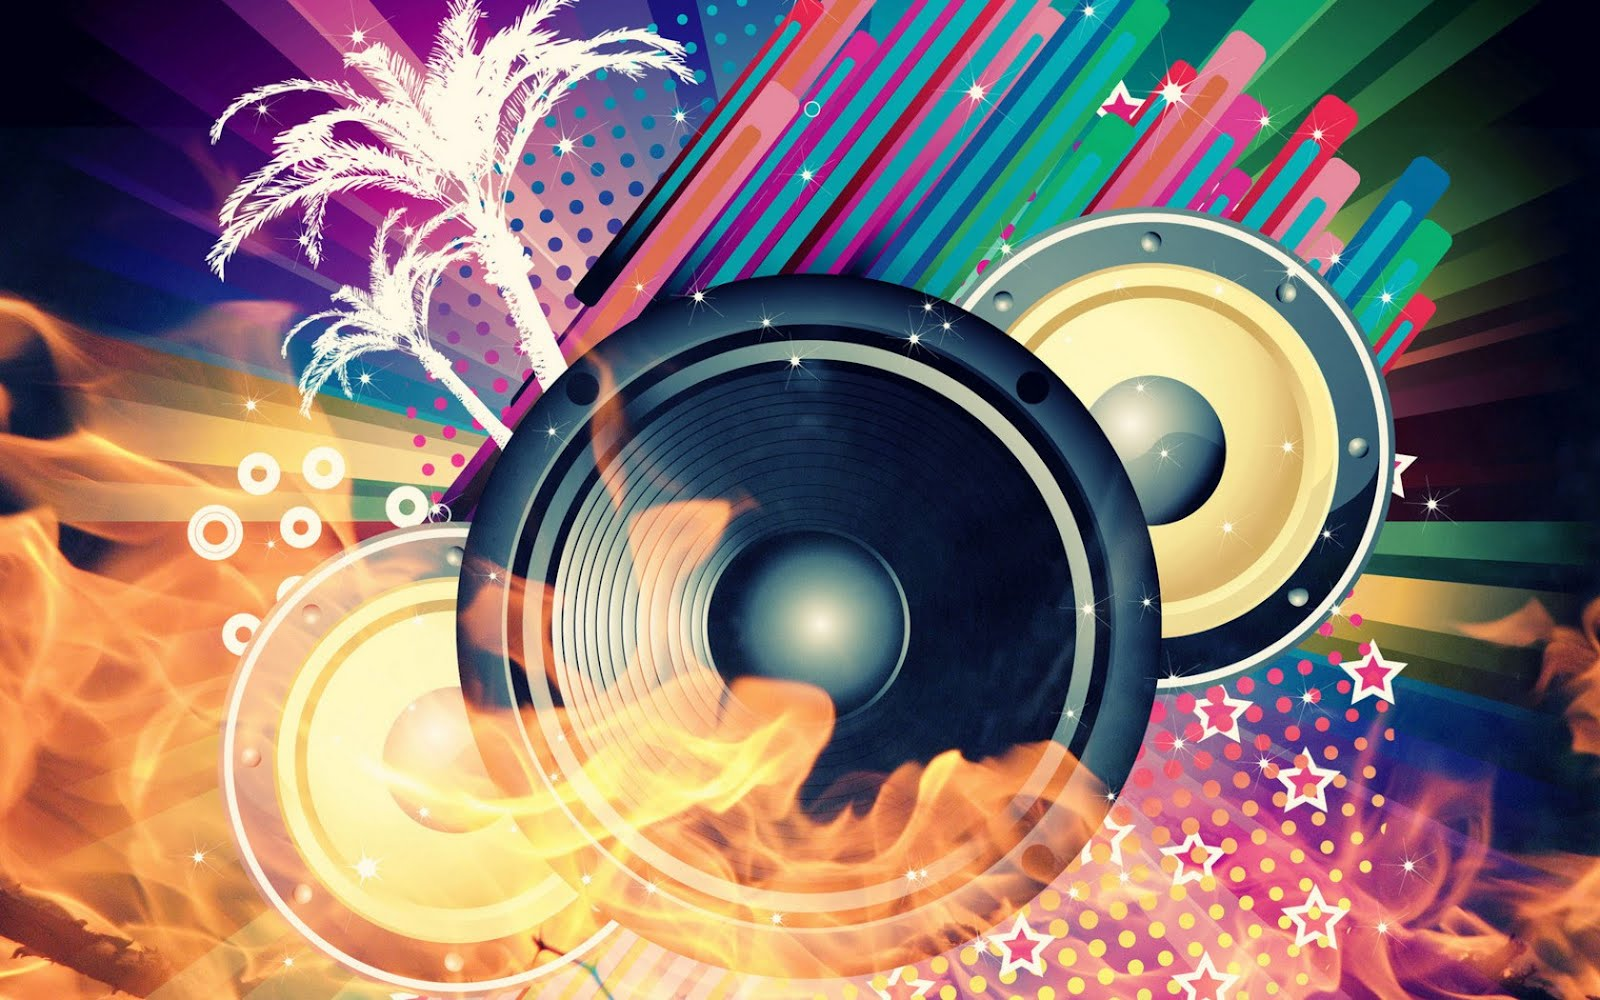 DJ Music Abstract Backgrounds